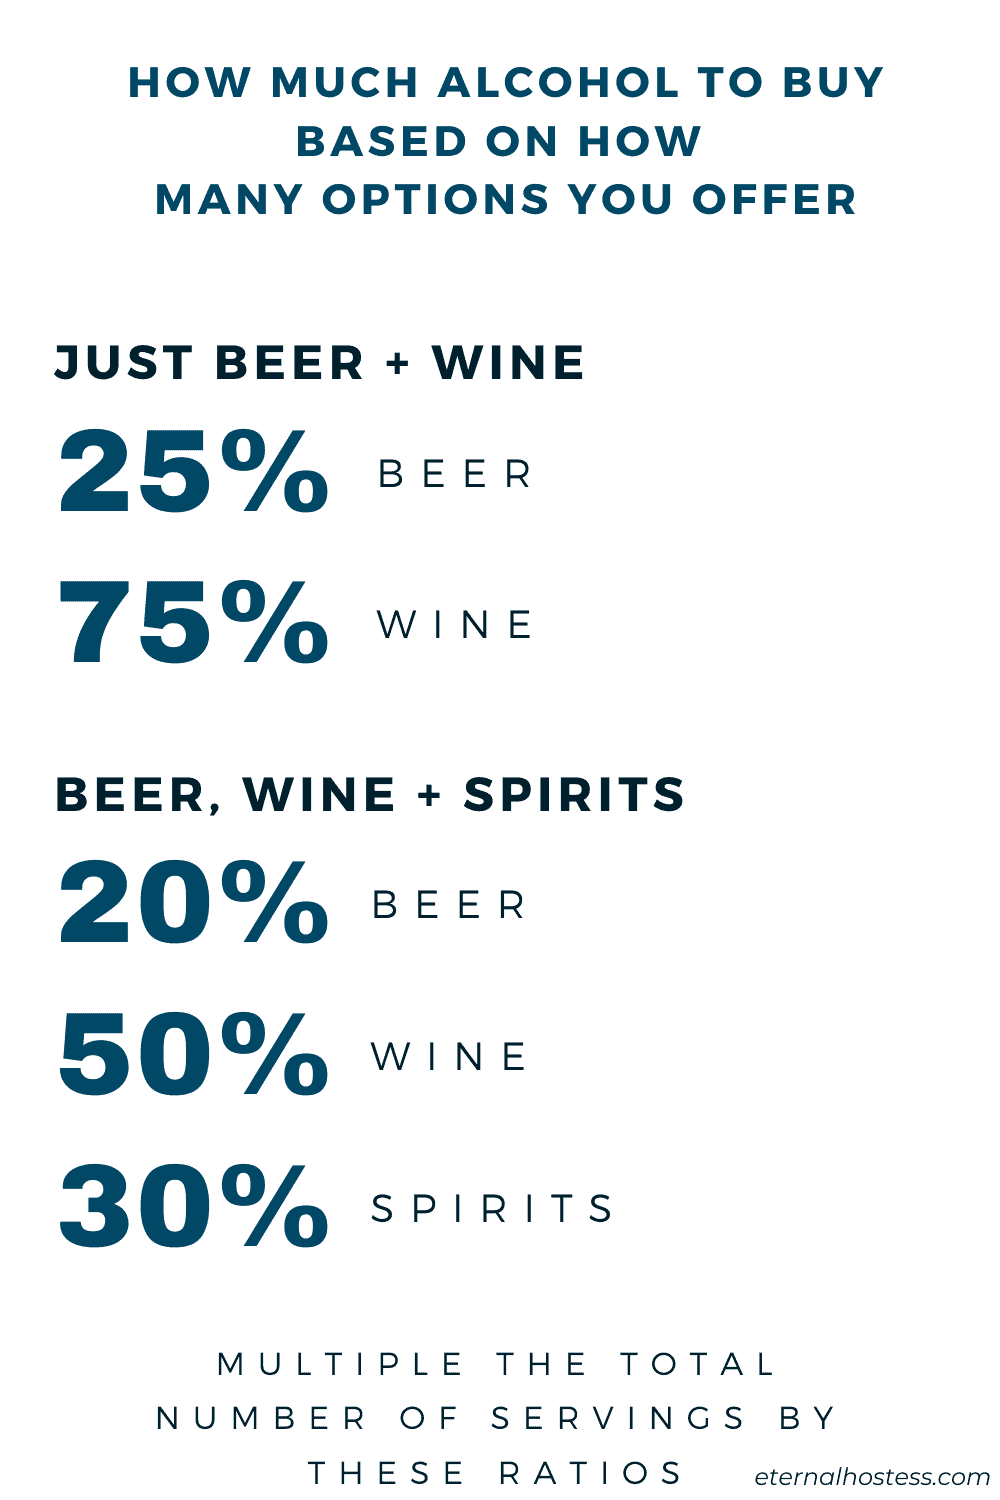 Alcohol ratios needed depending on how many options you offer.